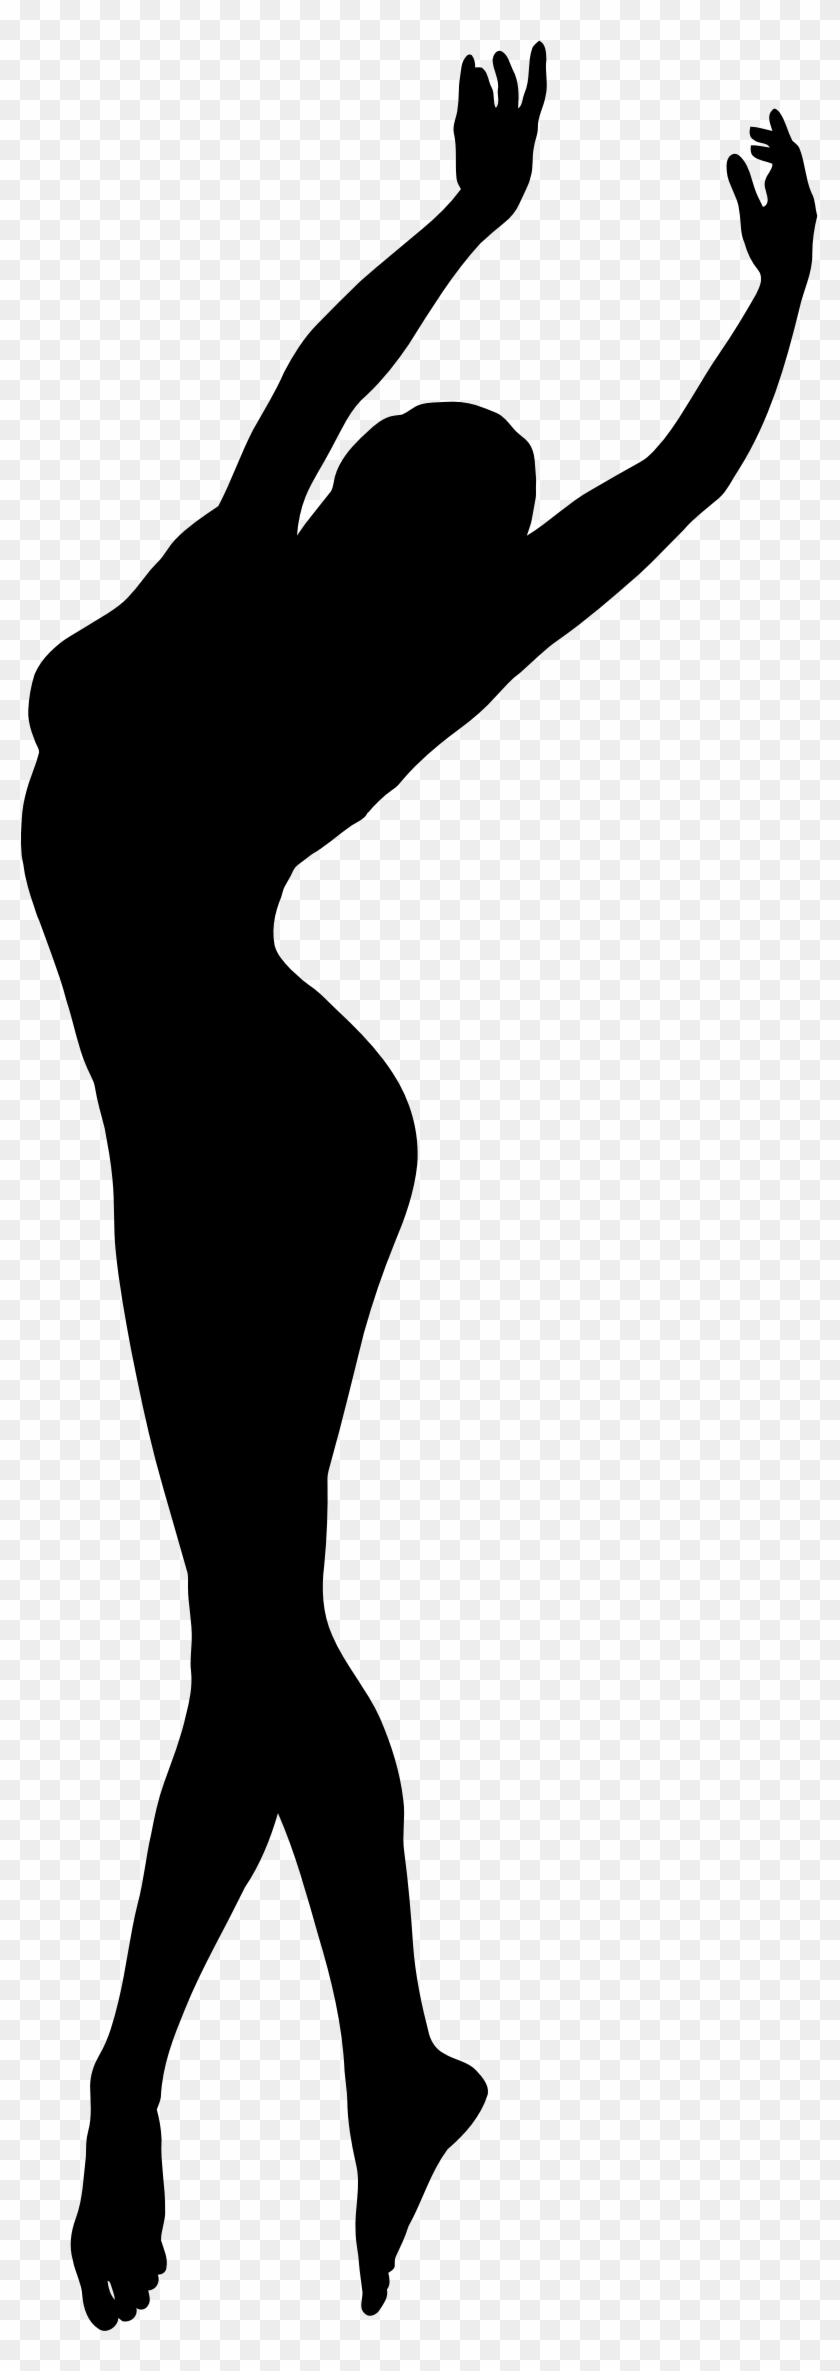 Valuable Design Ideas Silhouette Of A Woman Clipart - Dancing Woman Silhouette #86420